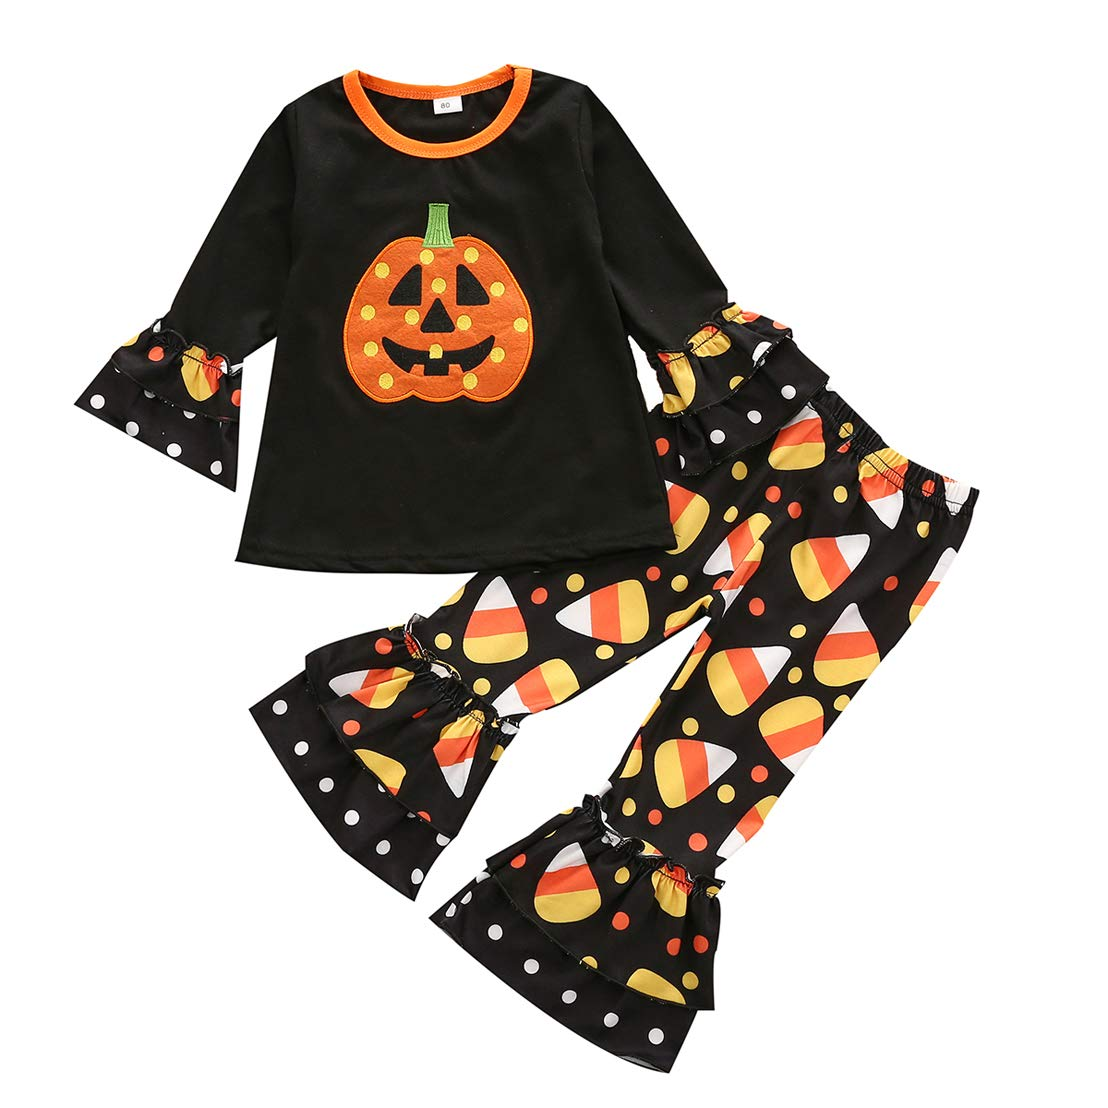 Qiylii Kids Baby Girl Velvet Bell-Bottoms Pants Fall Ruffle Flare Pant Trousers Leggings Toddler Clothes